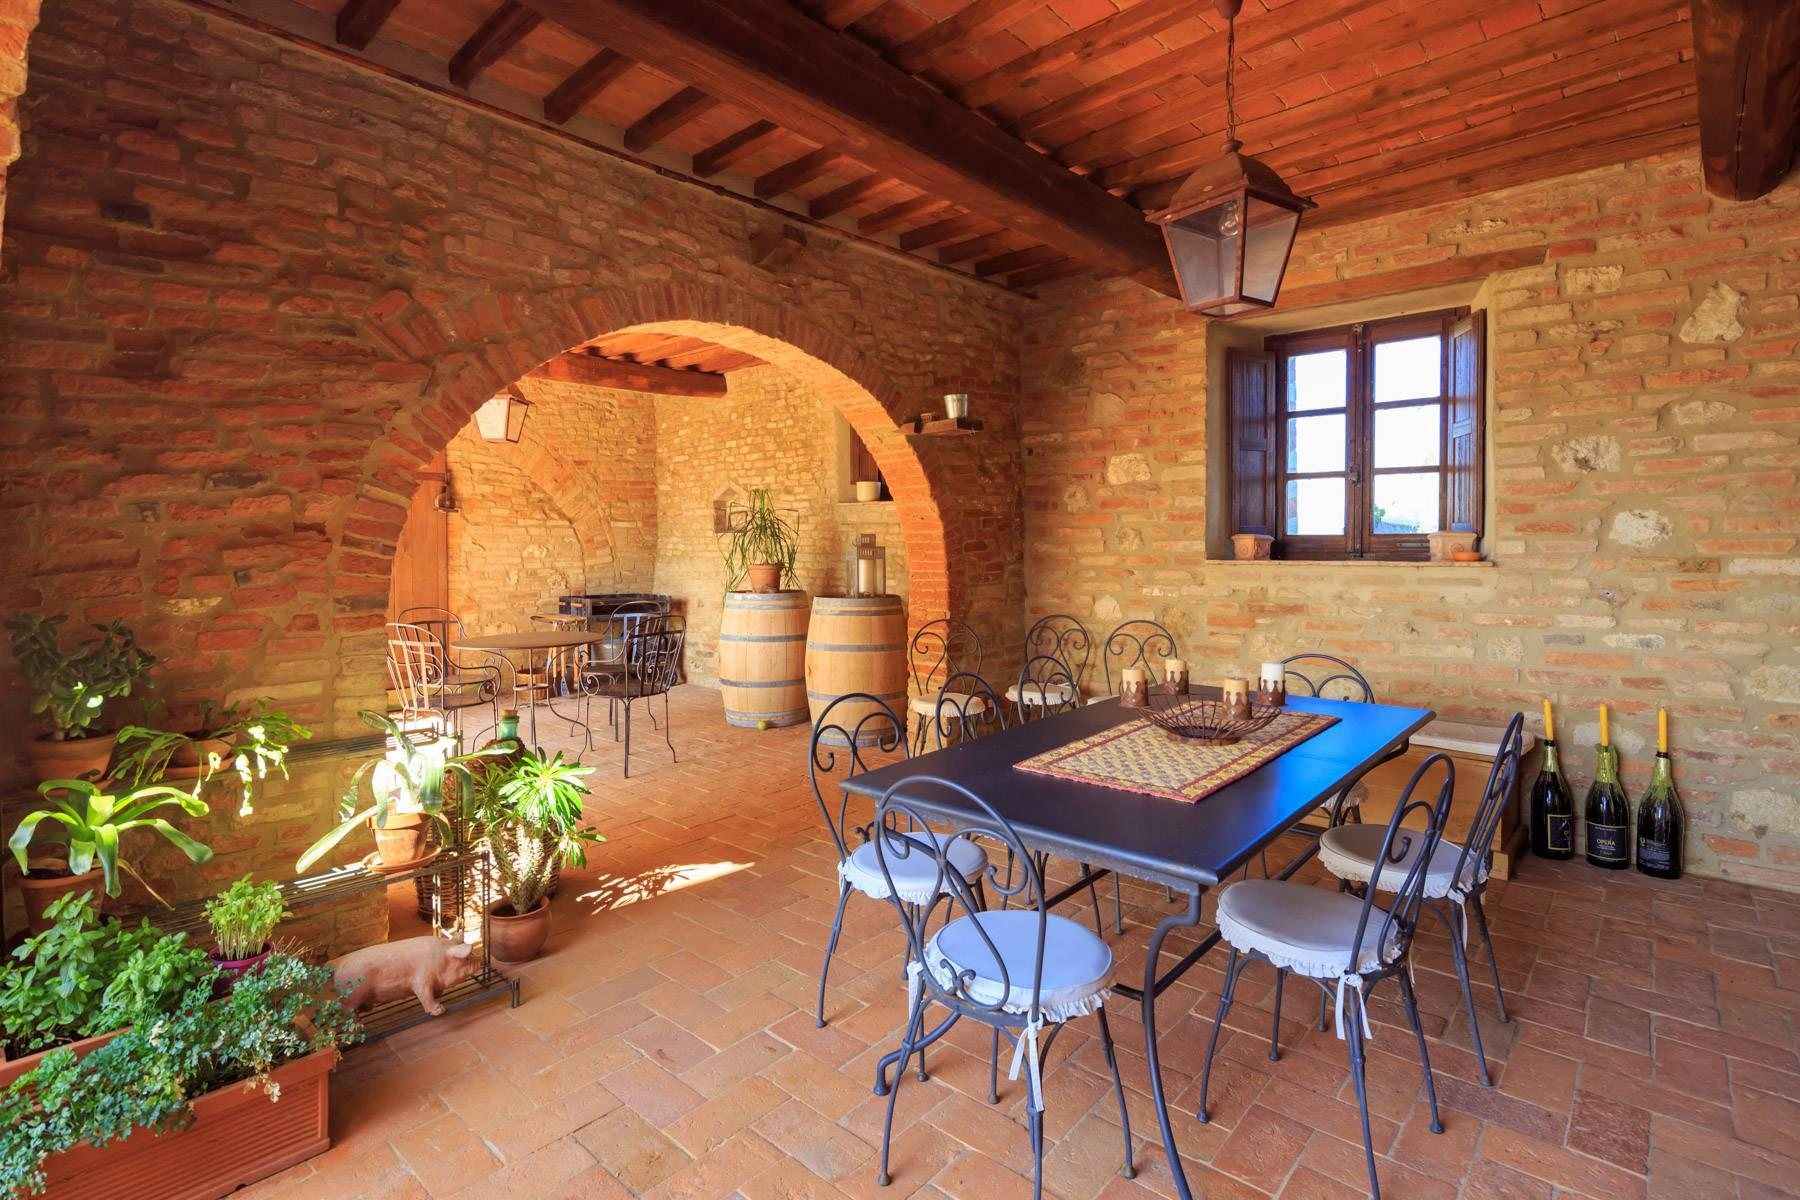 Wonderful tuscan countryhouse on the hills around Siena - 5